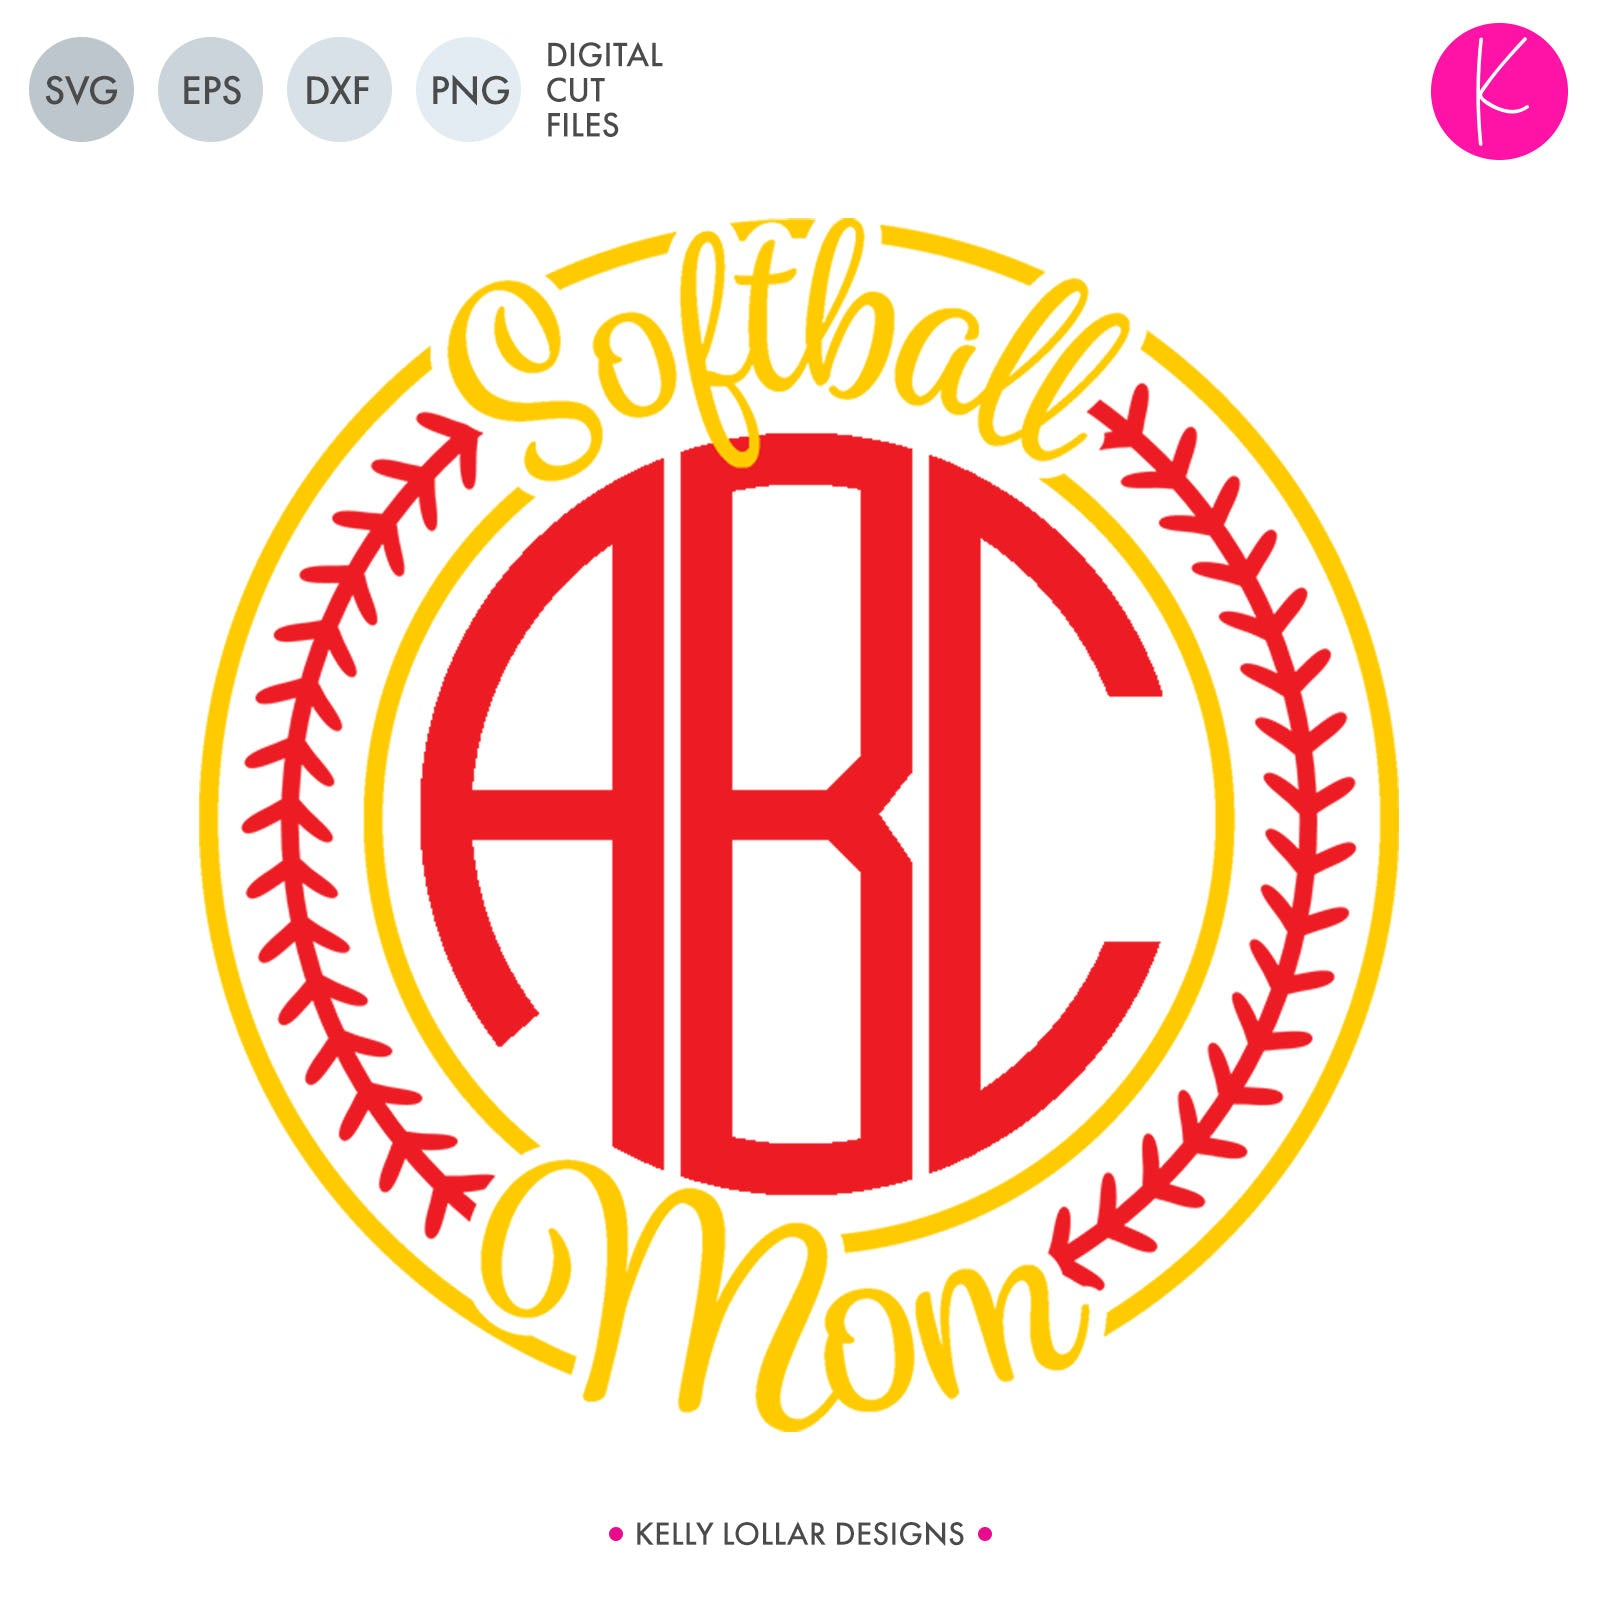 Softball Mom Monogram Frame for a circle monogram with stitch border and script lettering